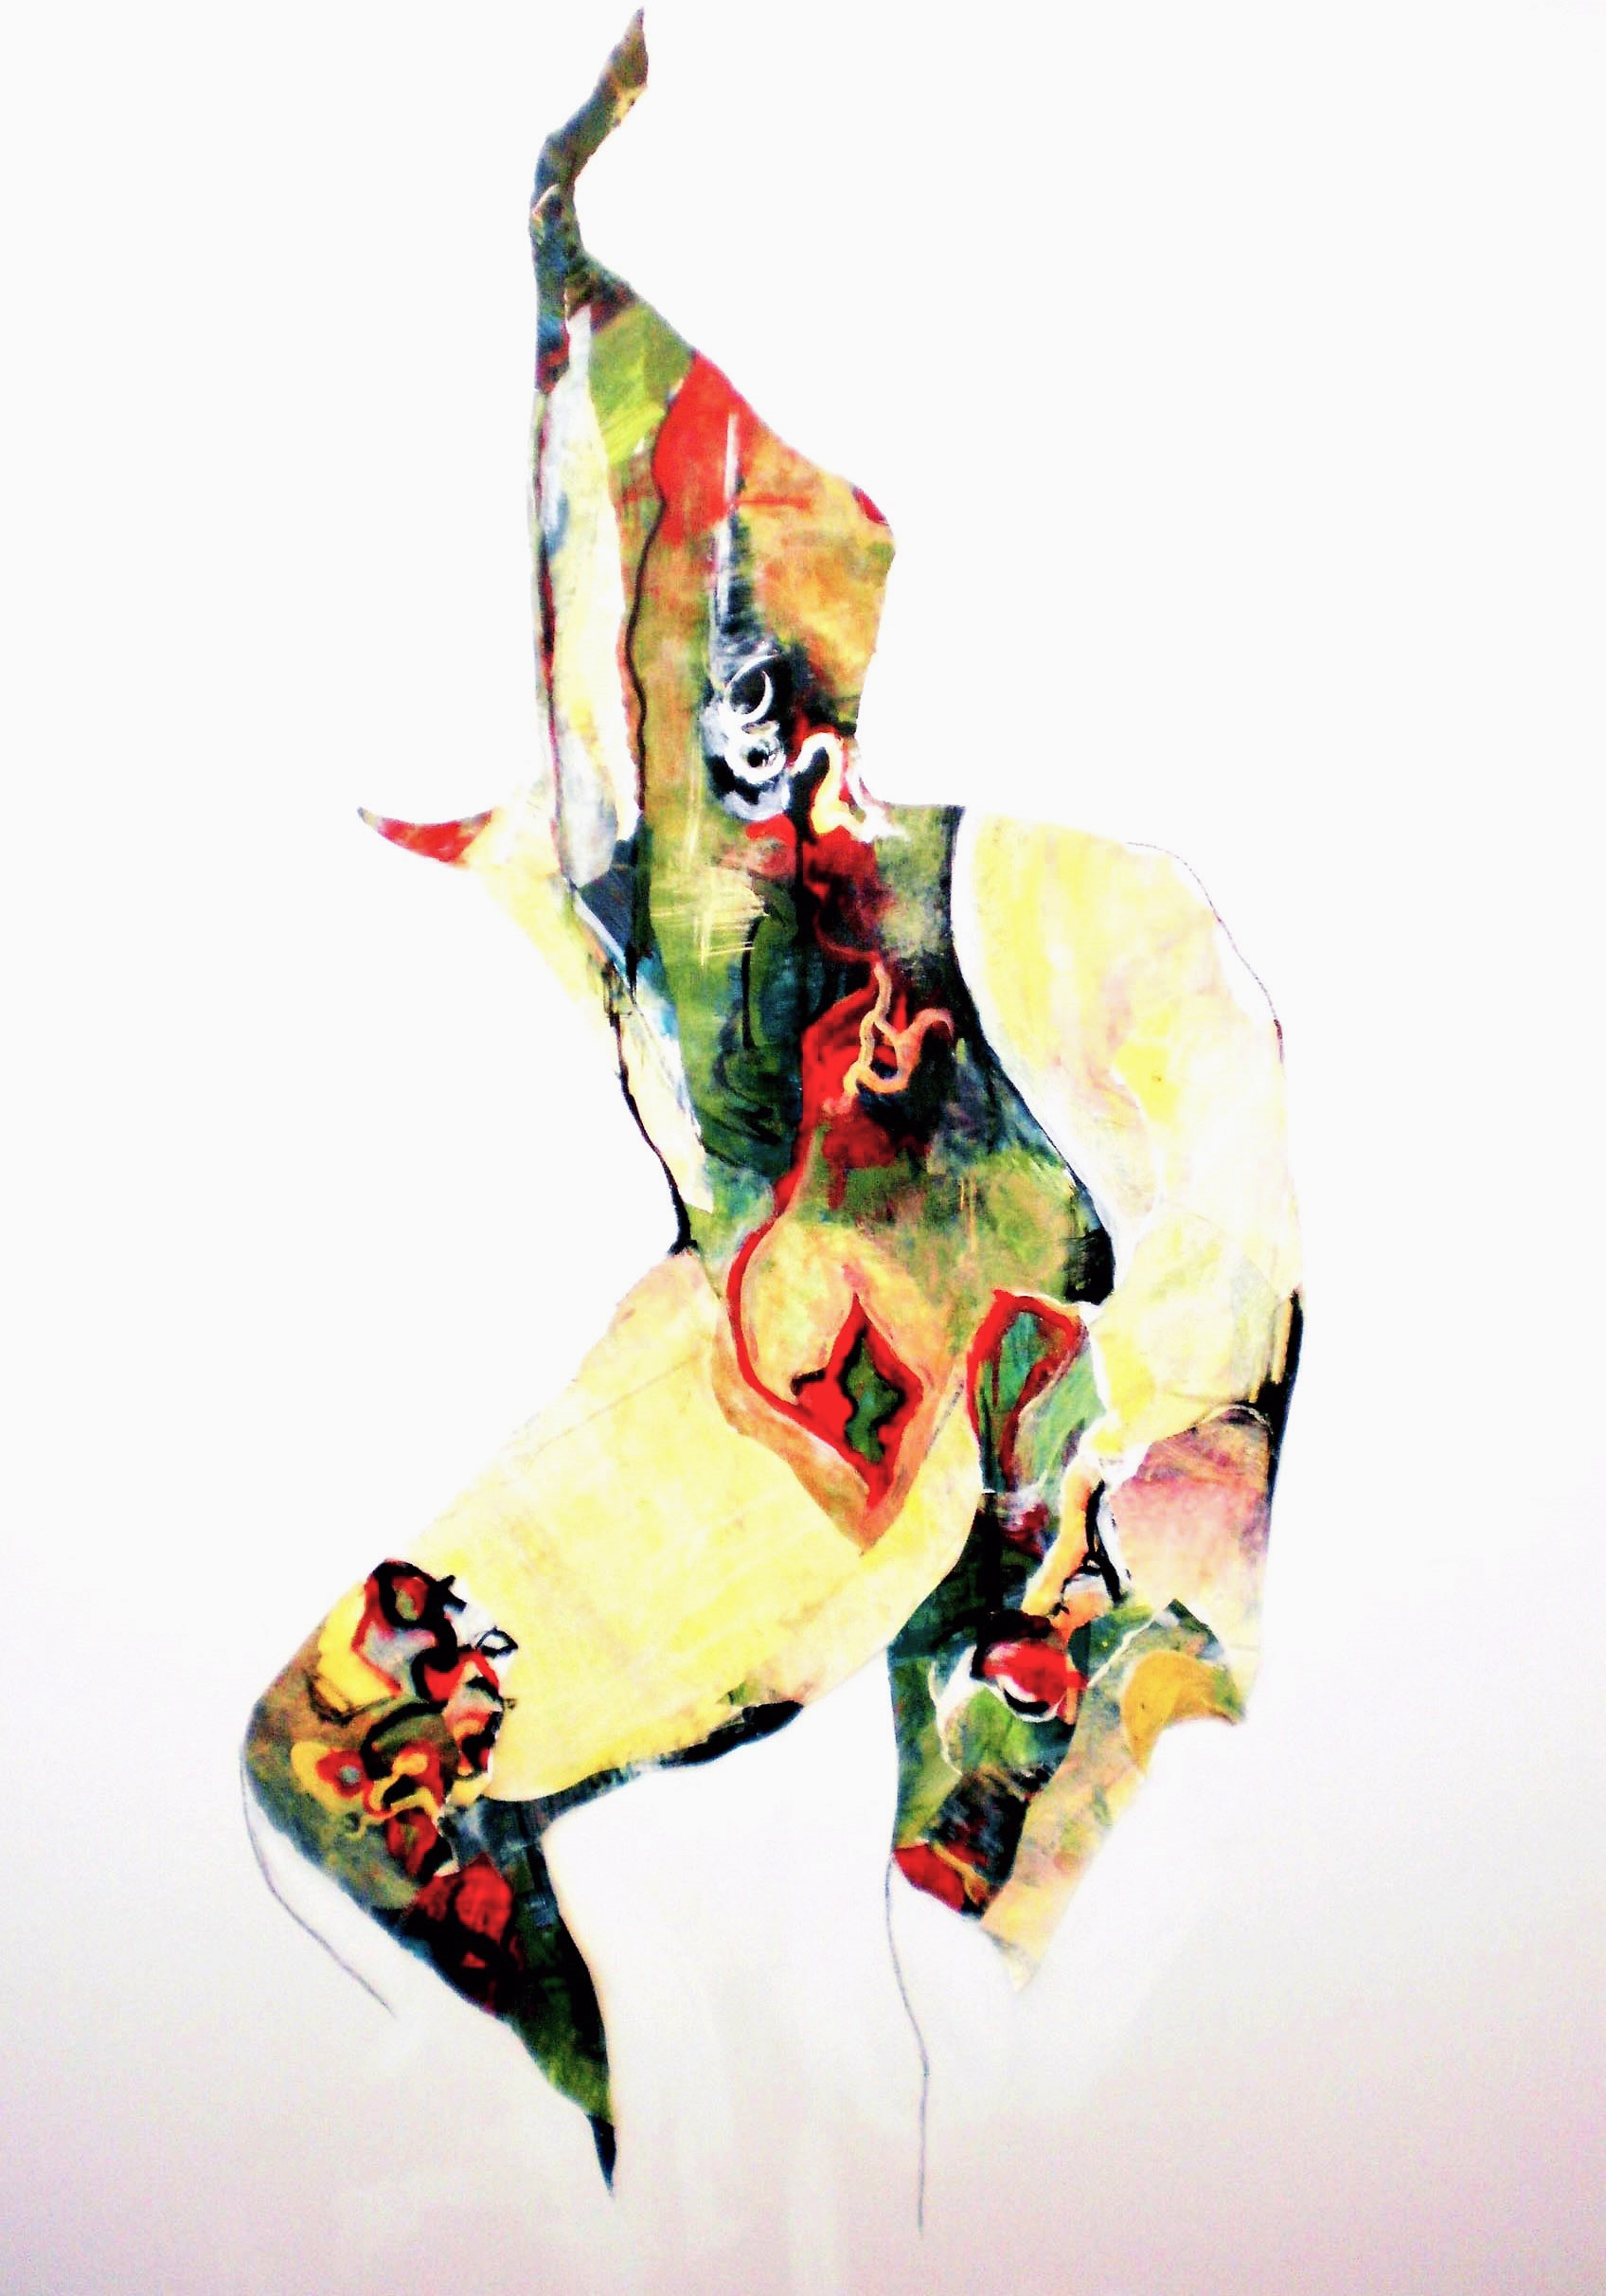 Colette Standish Surreal Abstracted Figure 2 - Acrylic collage on Canvas 48in-60in 2014-15.jpg